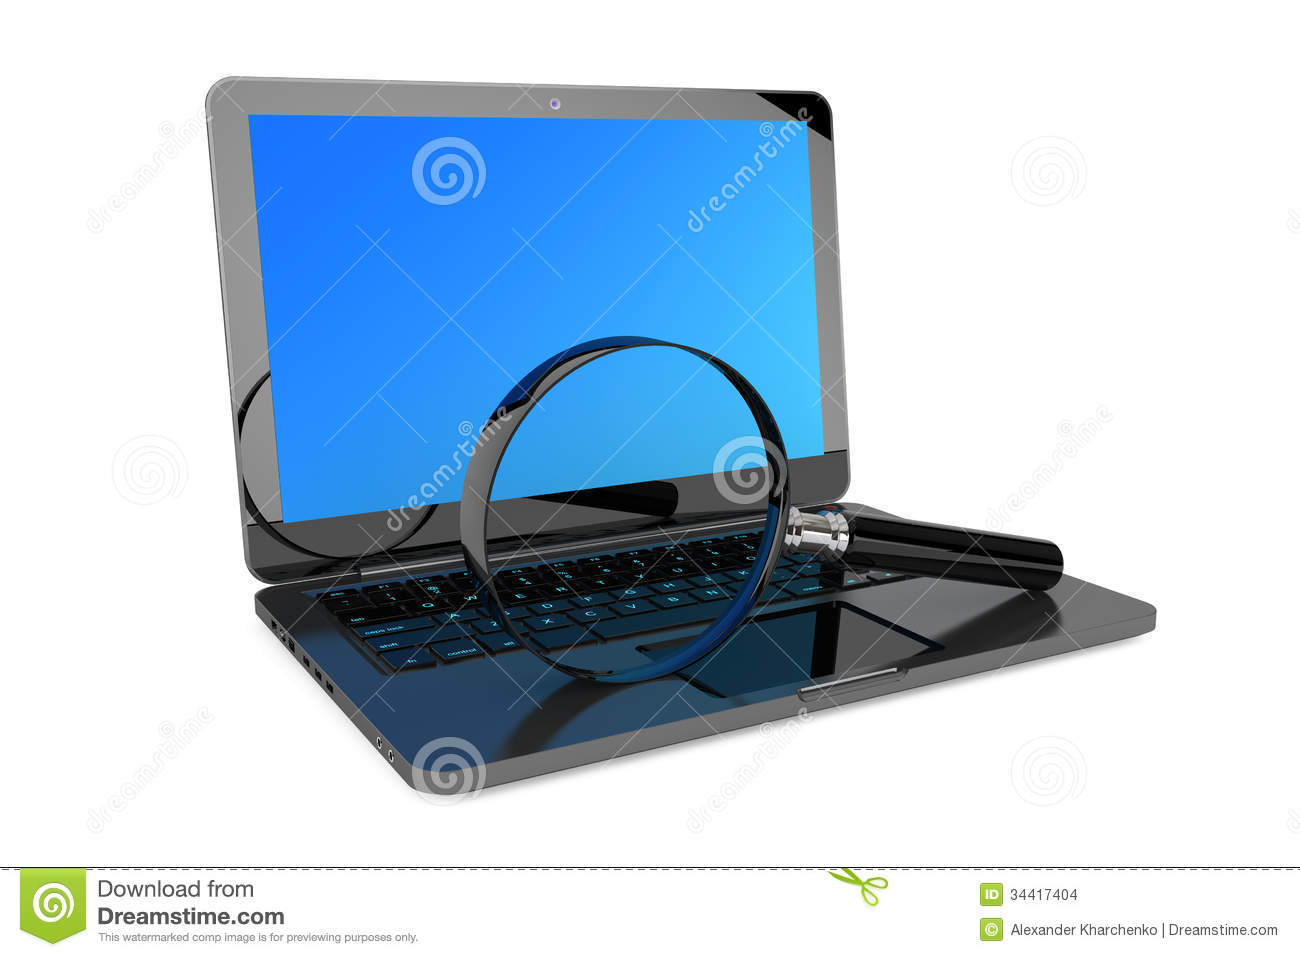 Search Concept. Laptop And Magnifier Stock Images - Image: 34417404: dreamstime.com/stock-images-search-concept-laptop-magnifier-white...